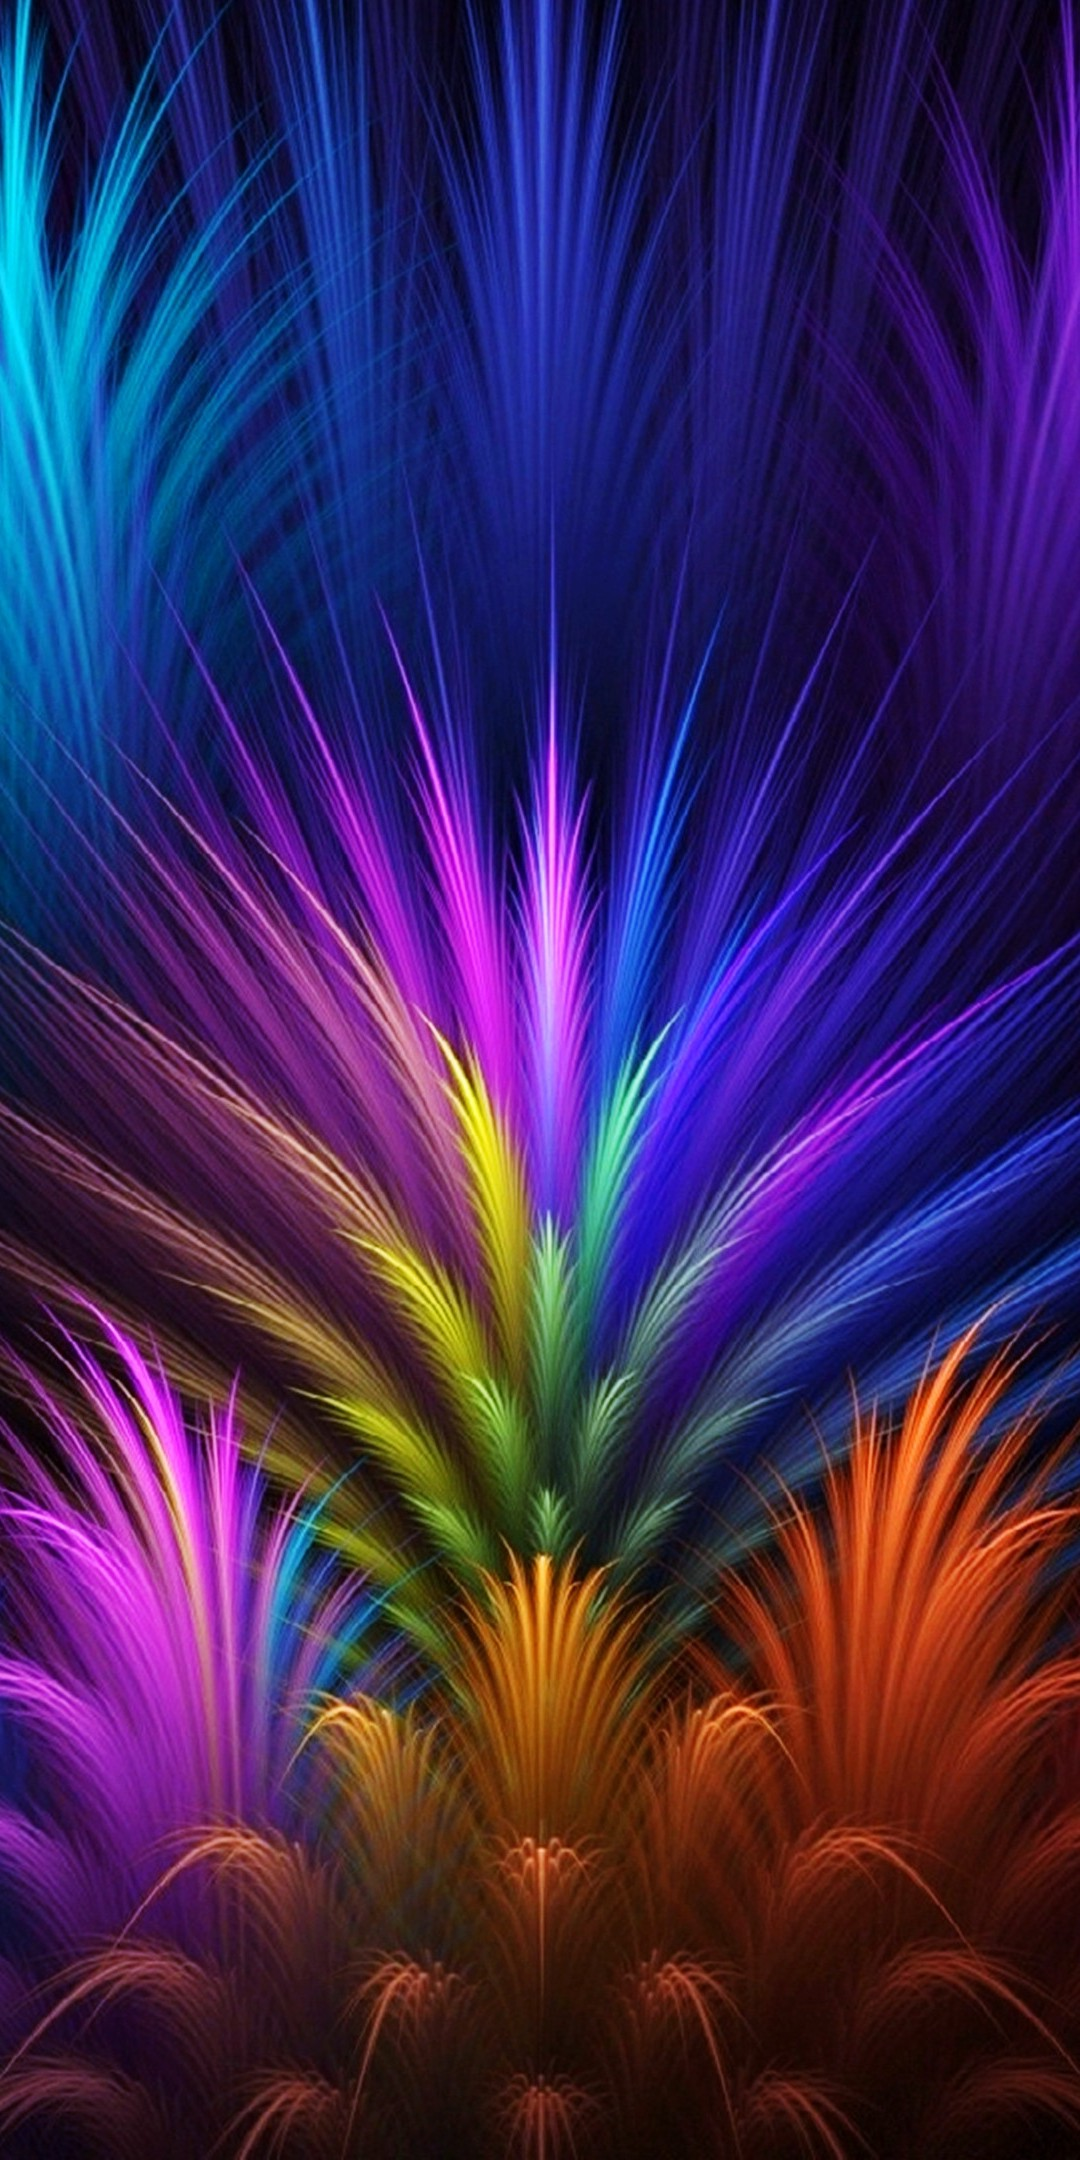 huawei mate 10 pro stock wallpapers hd